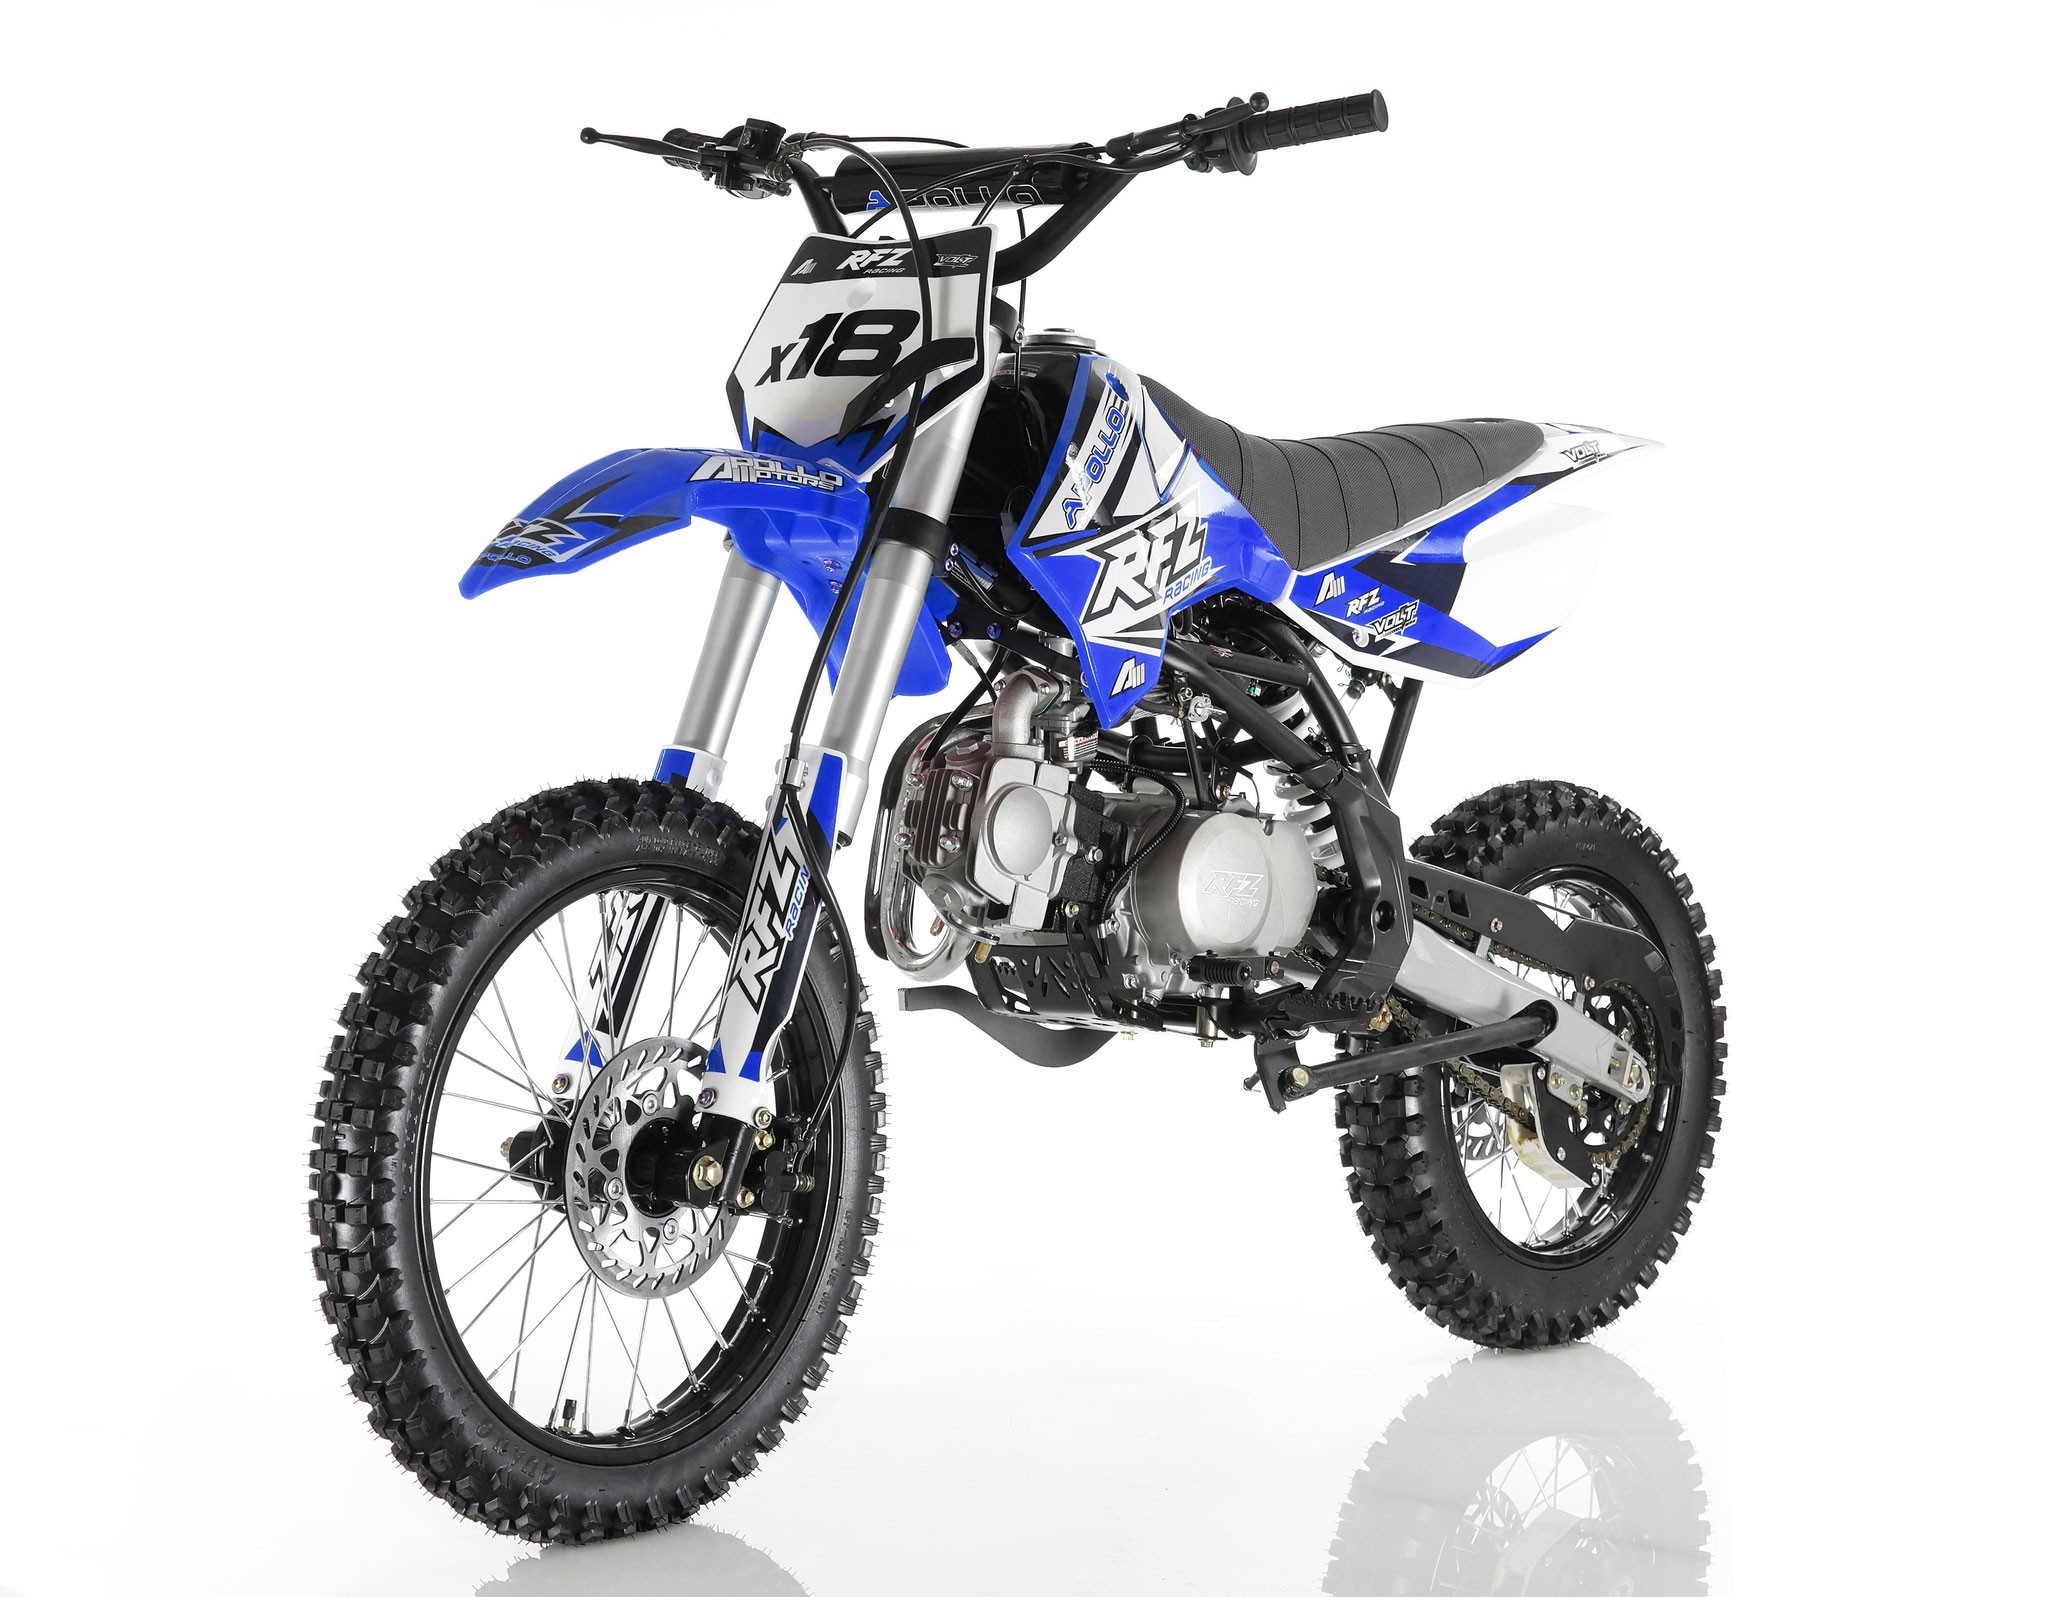 apollo db x18 125cc dirt bike for sale. Black Bedroom Furniture Sets. Home Design Ideas